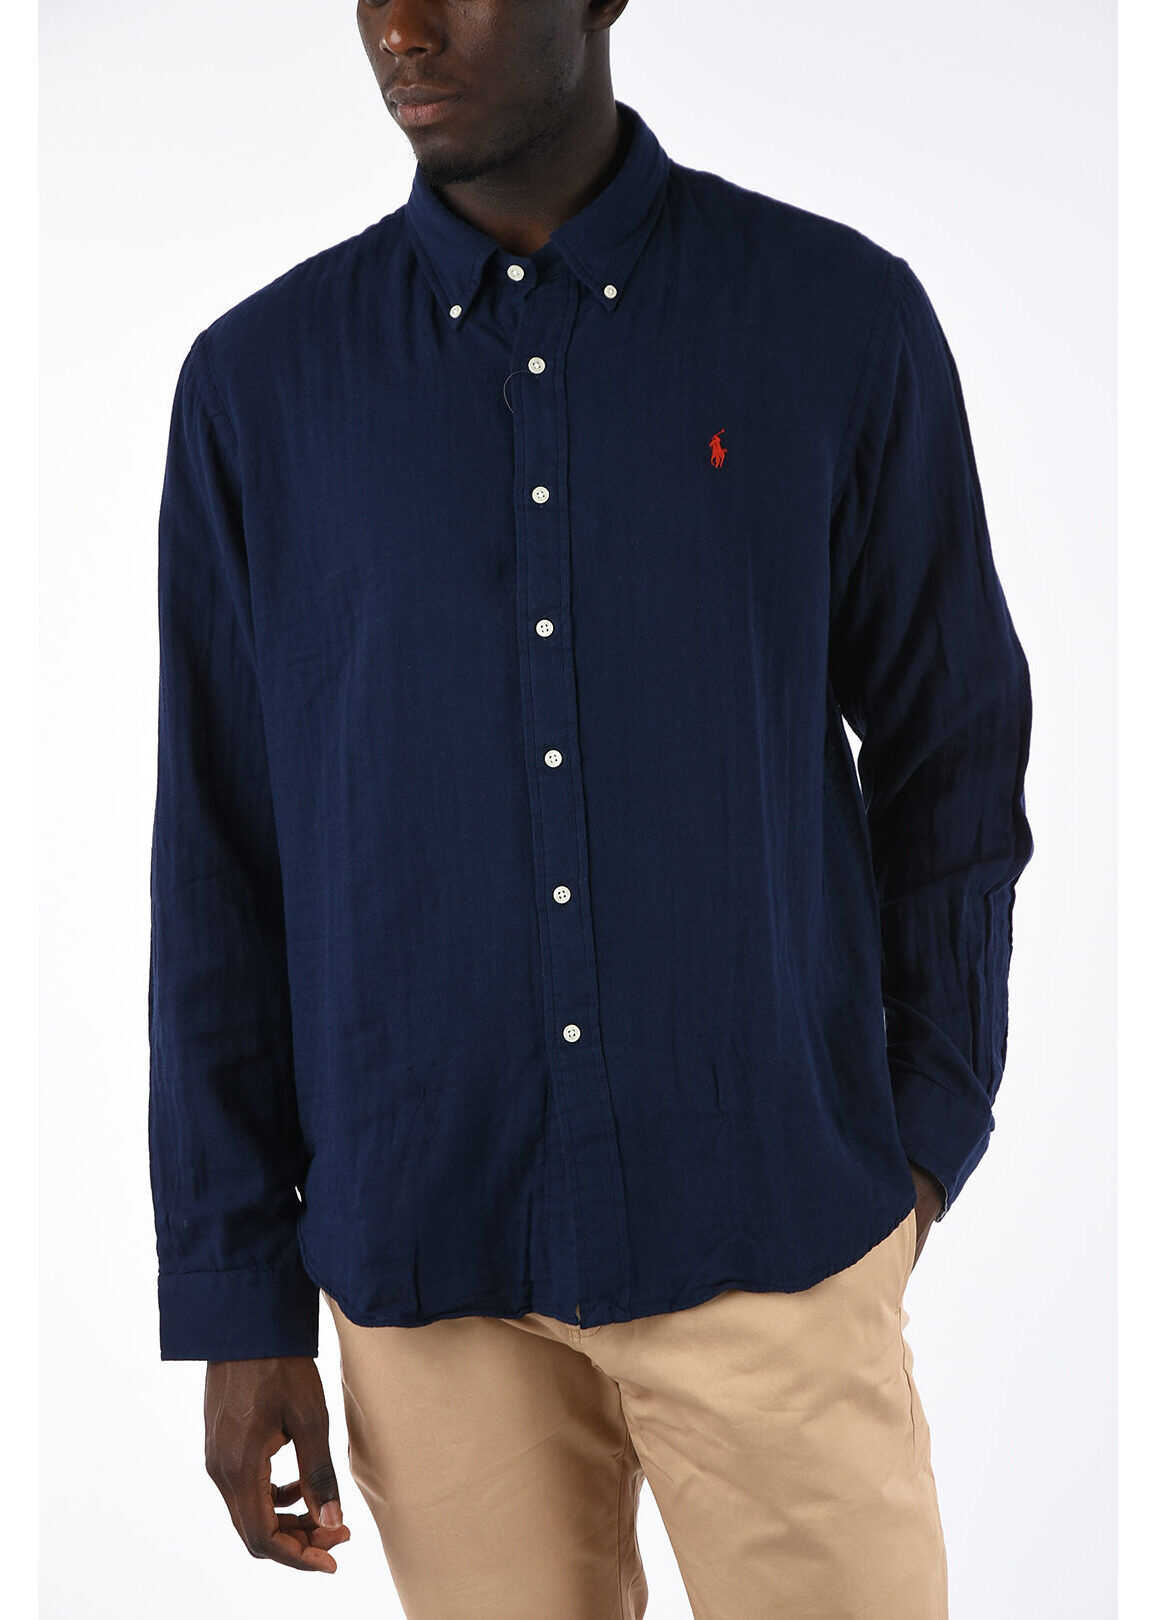 Ralph Lauren Slim Fit Button-Down Shirt BLUE